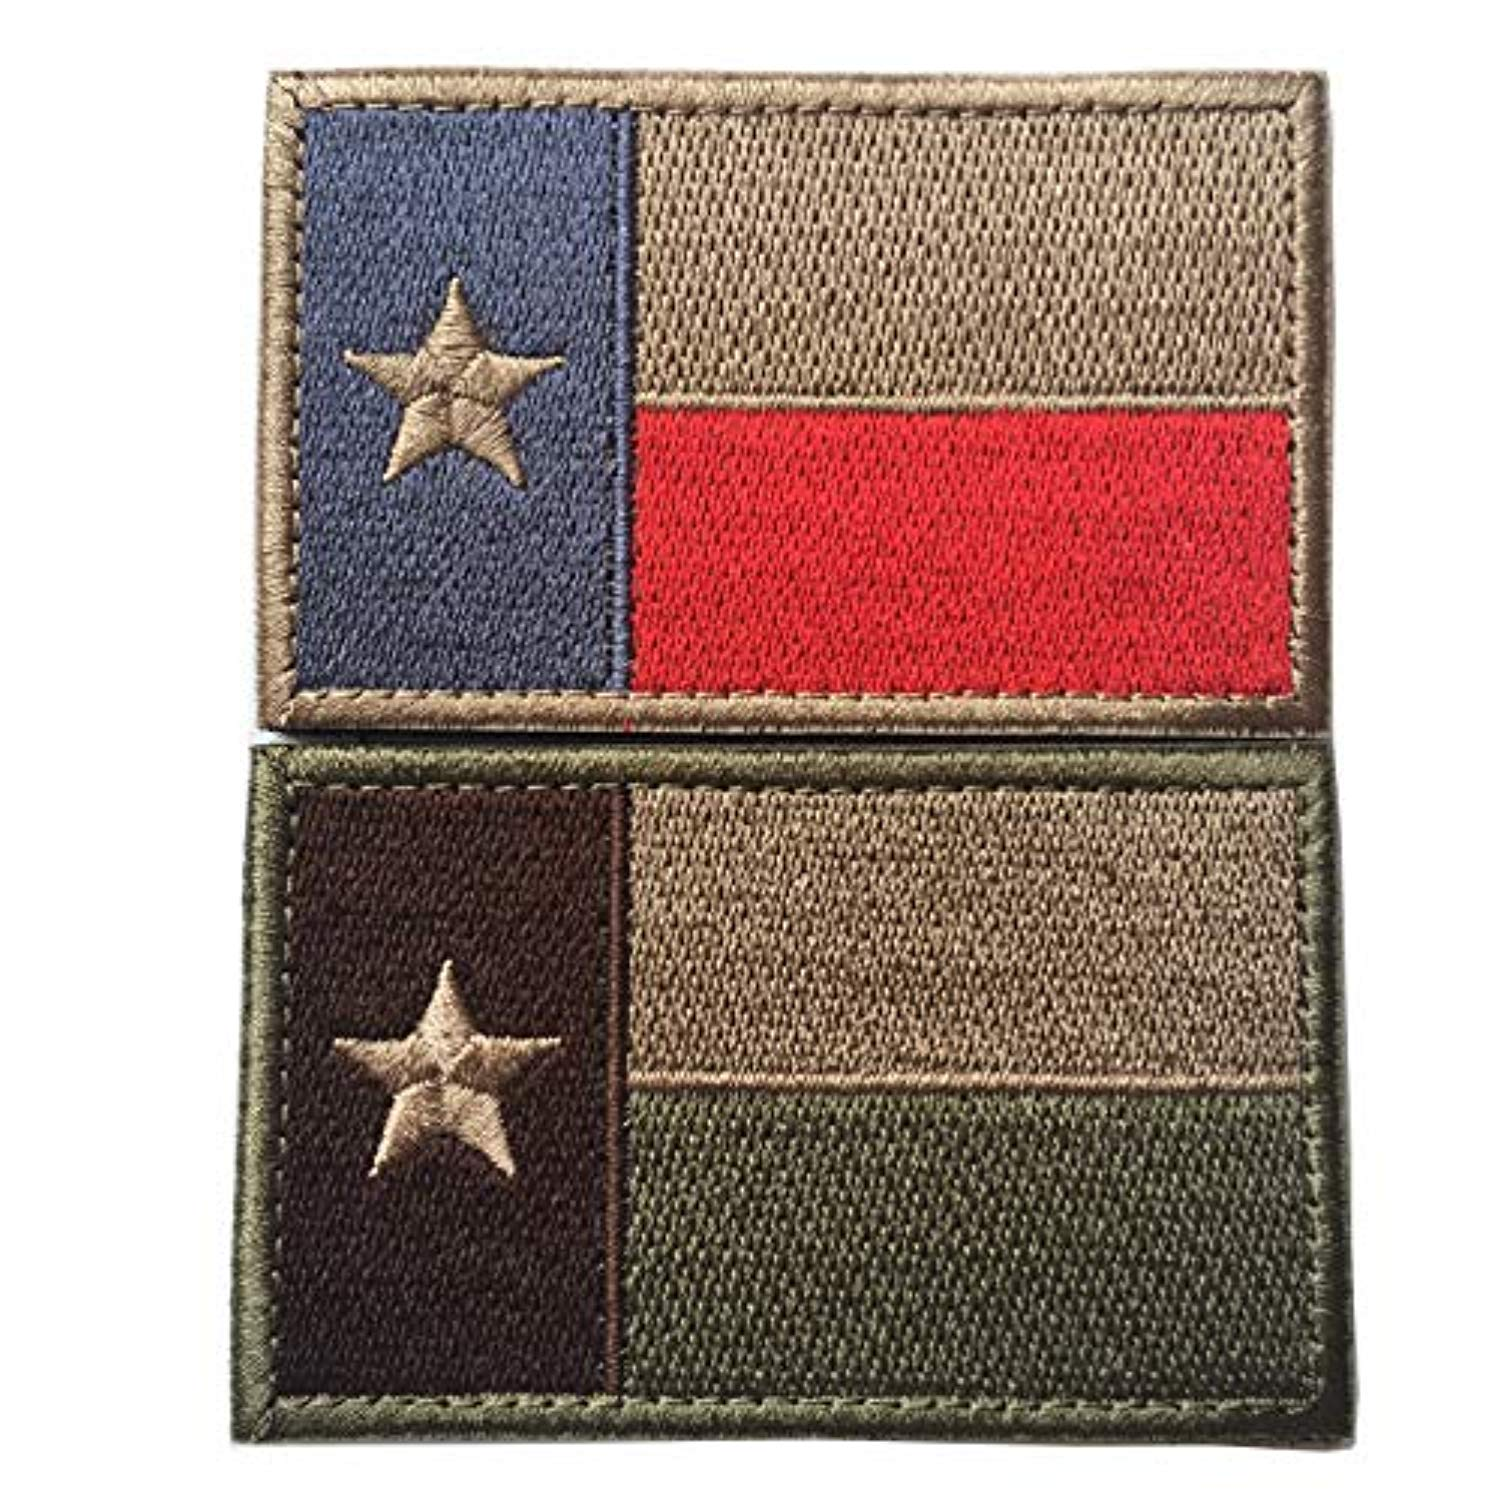 Bundle 2 Pieces - Tactical American US Texas State Lonely Star Flag Patch Morale Patch-Hook & Loop Fastener Morale 2